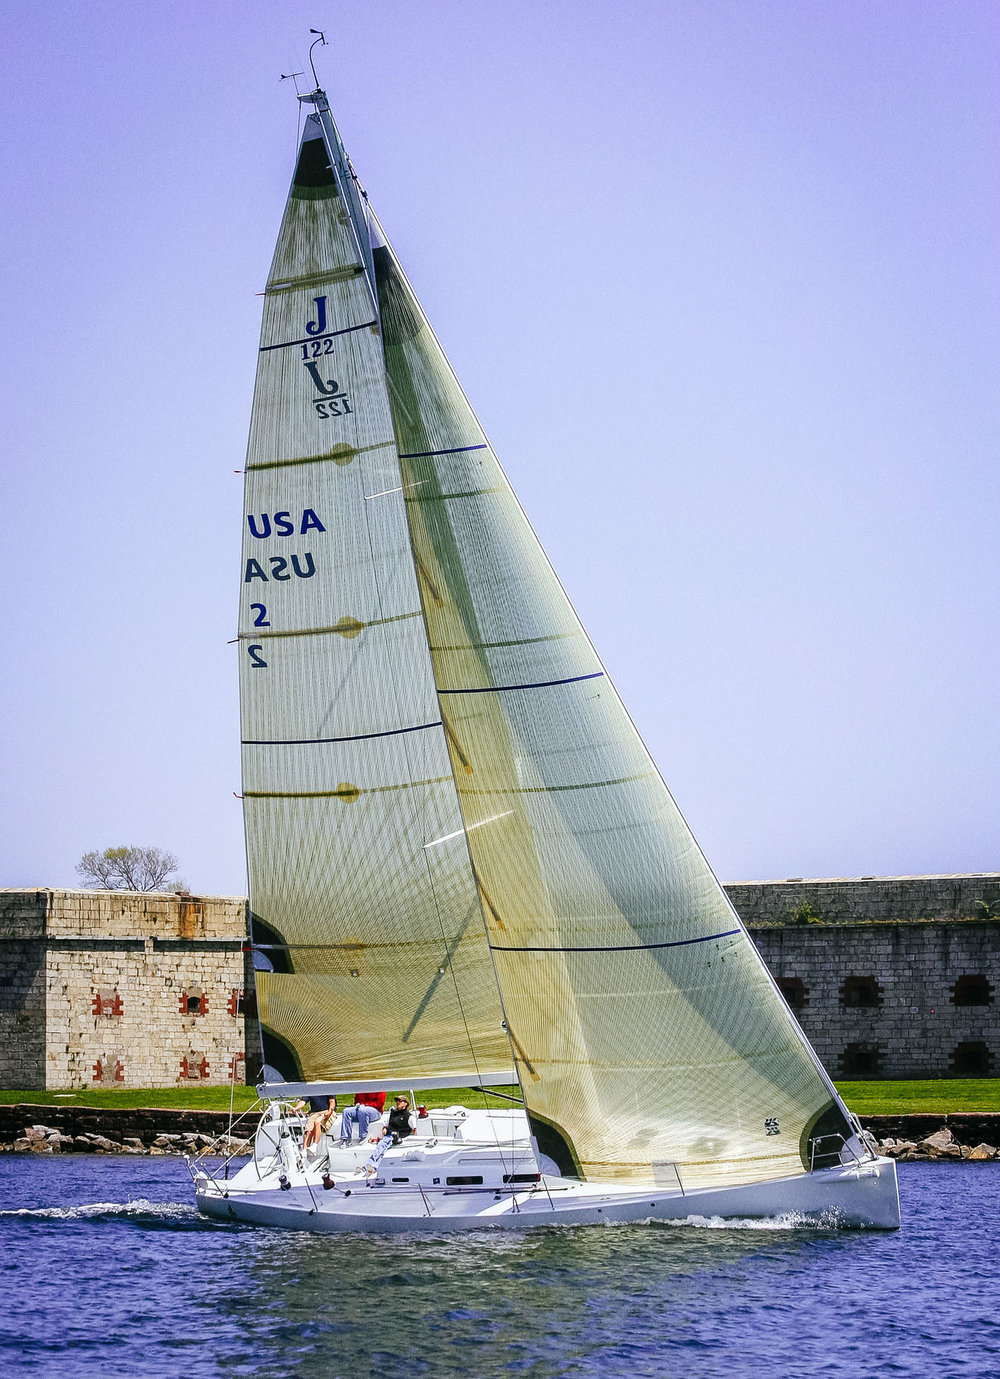 With wide swept-back spreaders, the jibs can overlap the mast slightly as shown above on this J/122.